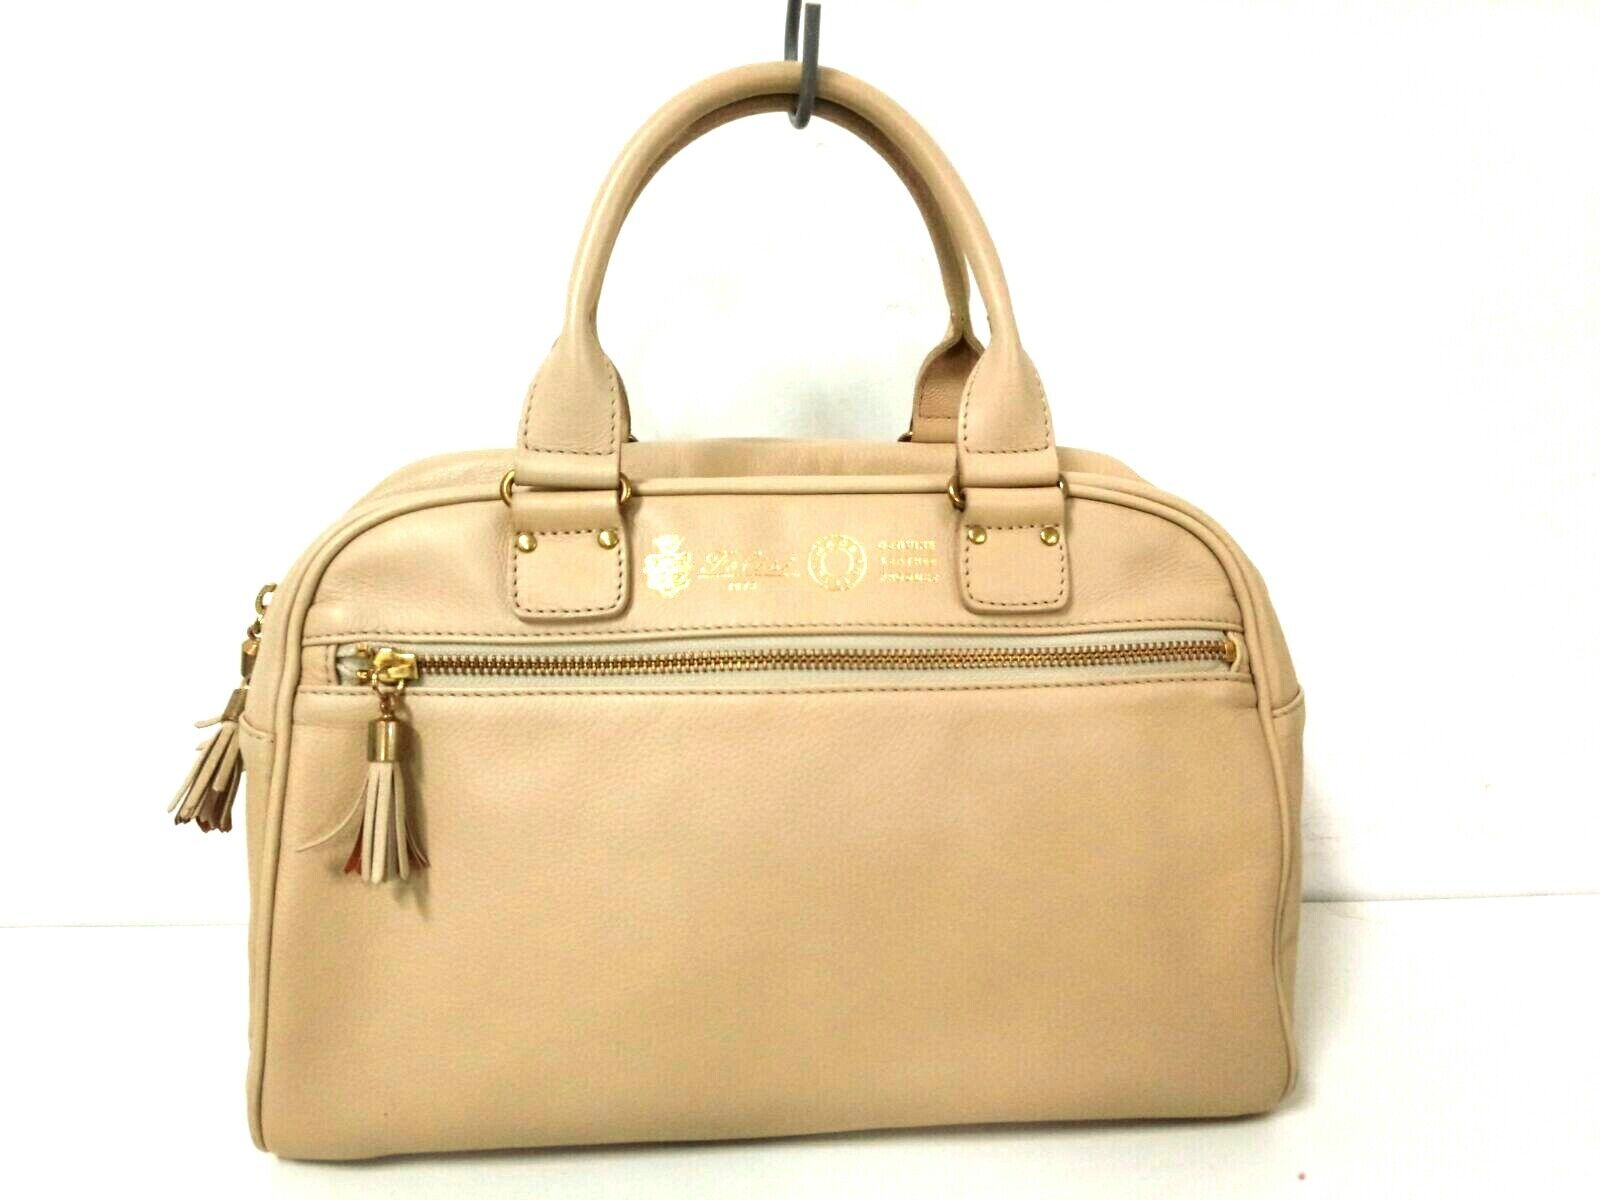 Auth Felisi 14-19 Beige Leather Handbag